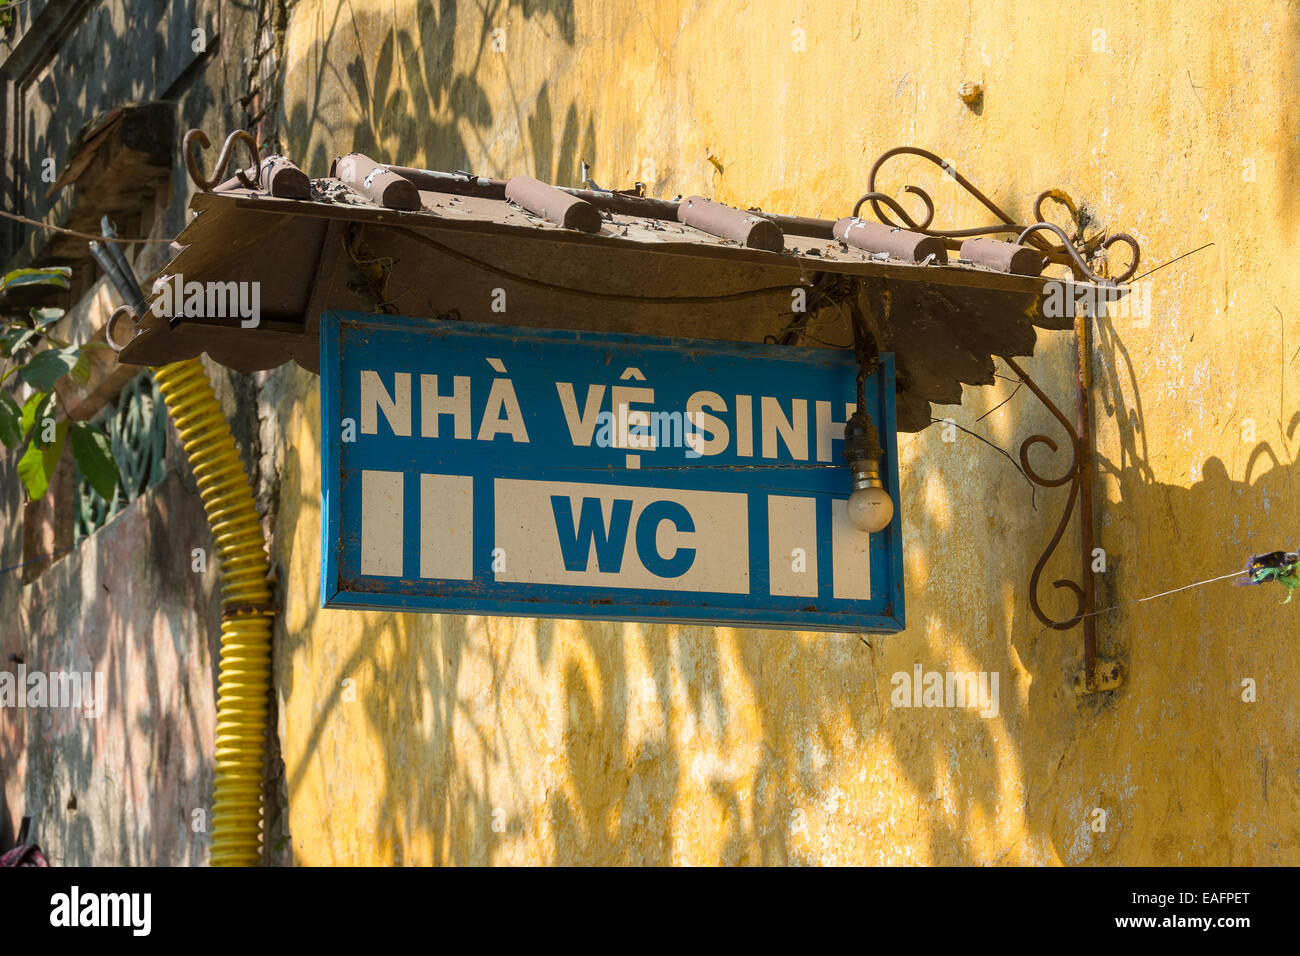 Public toilet or WC sign in Vietnamese - Stock Image